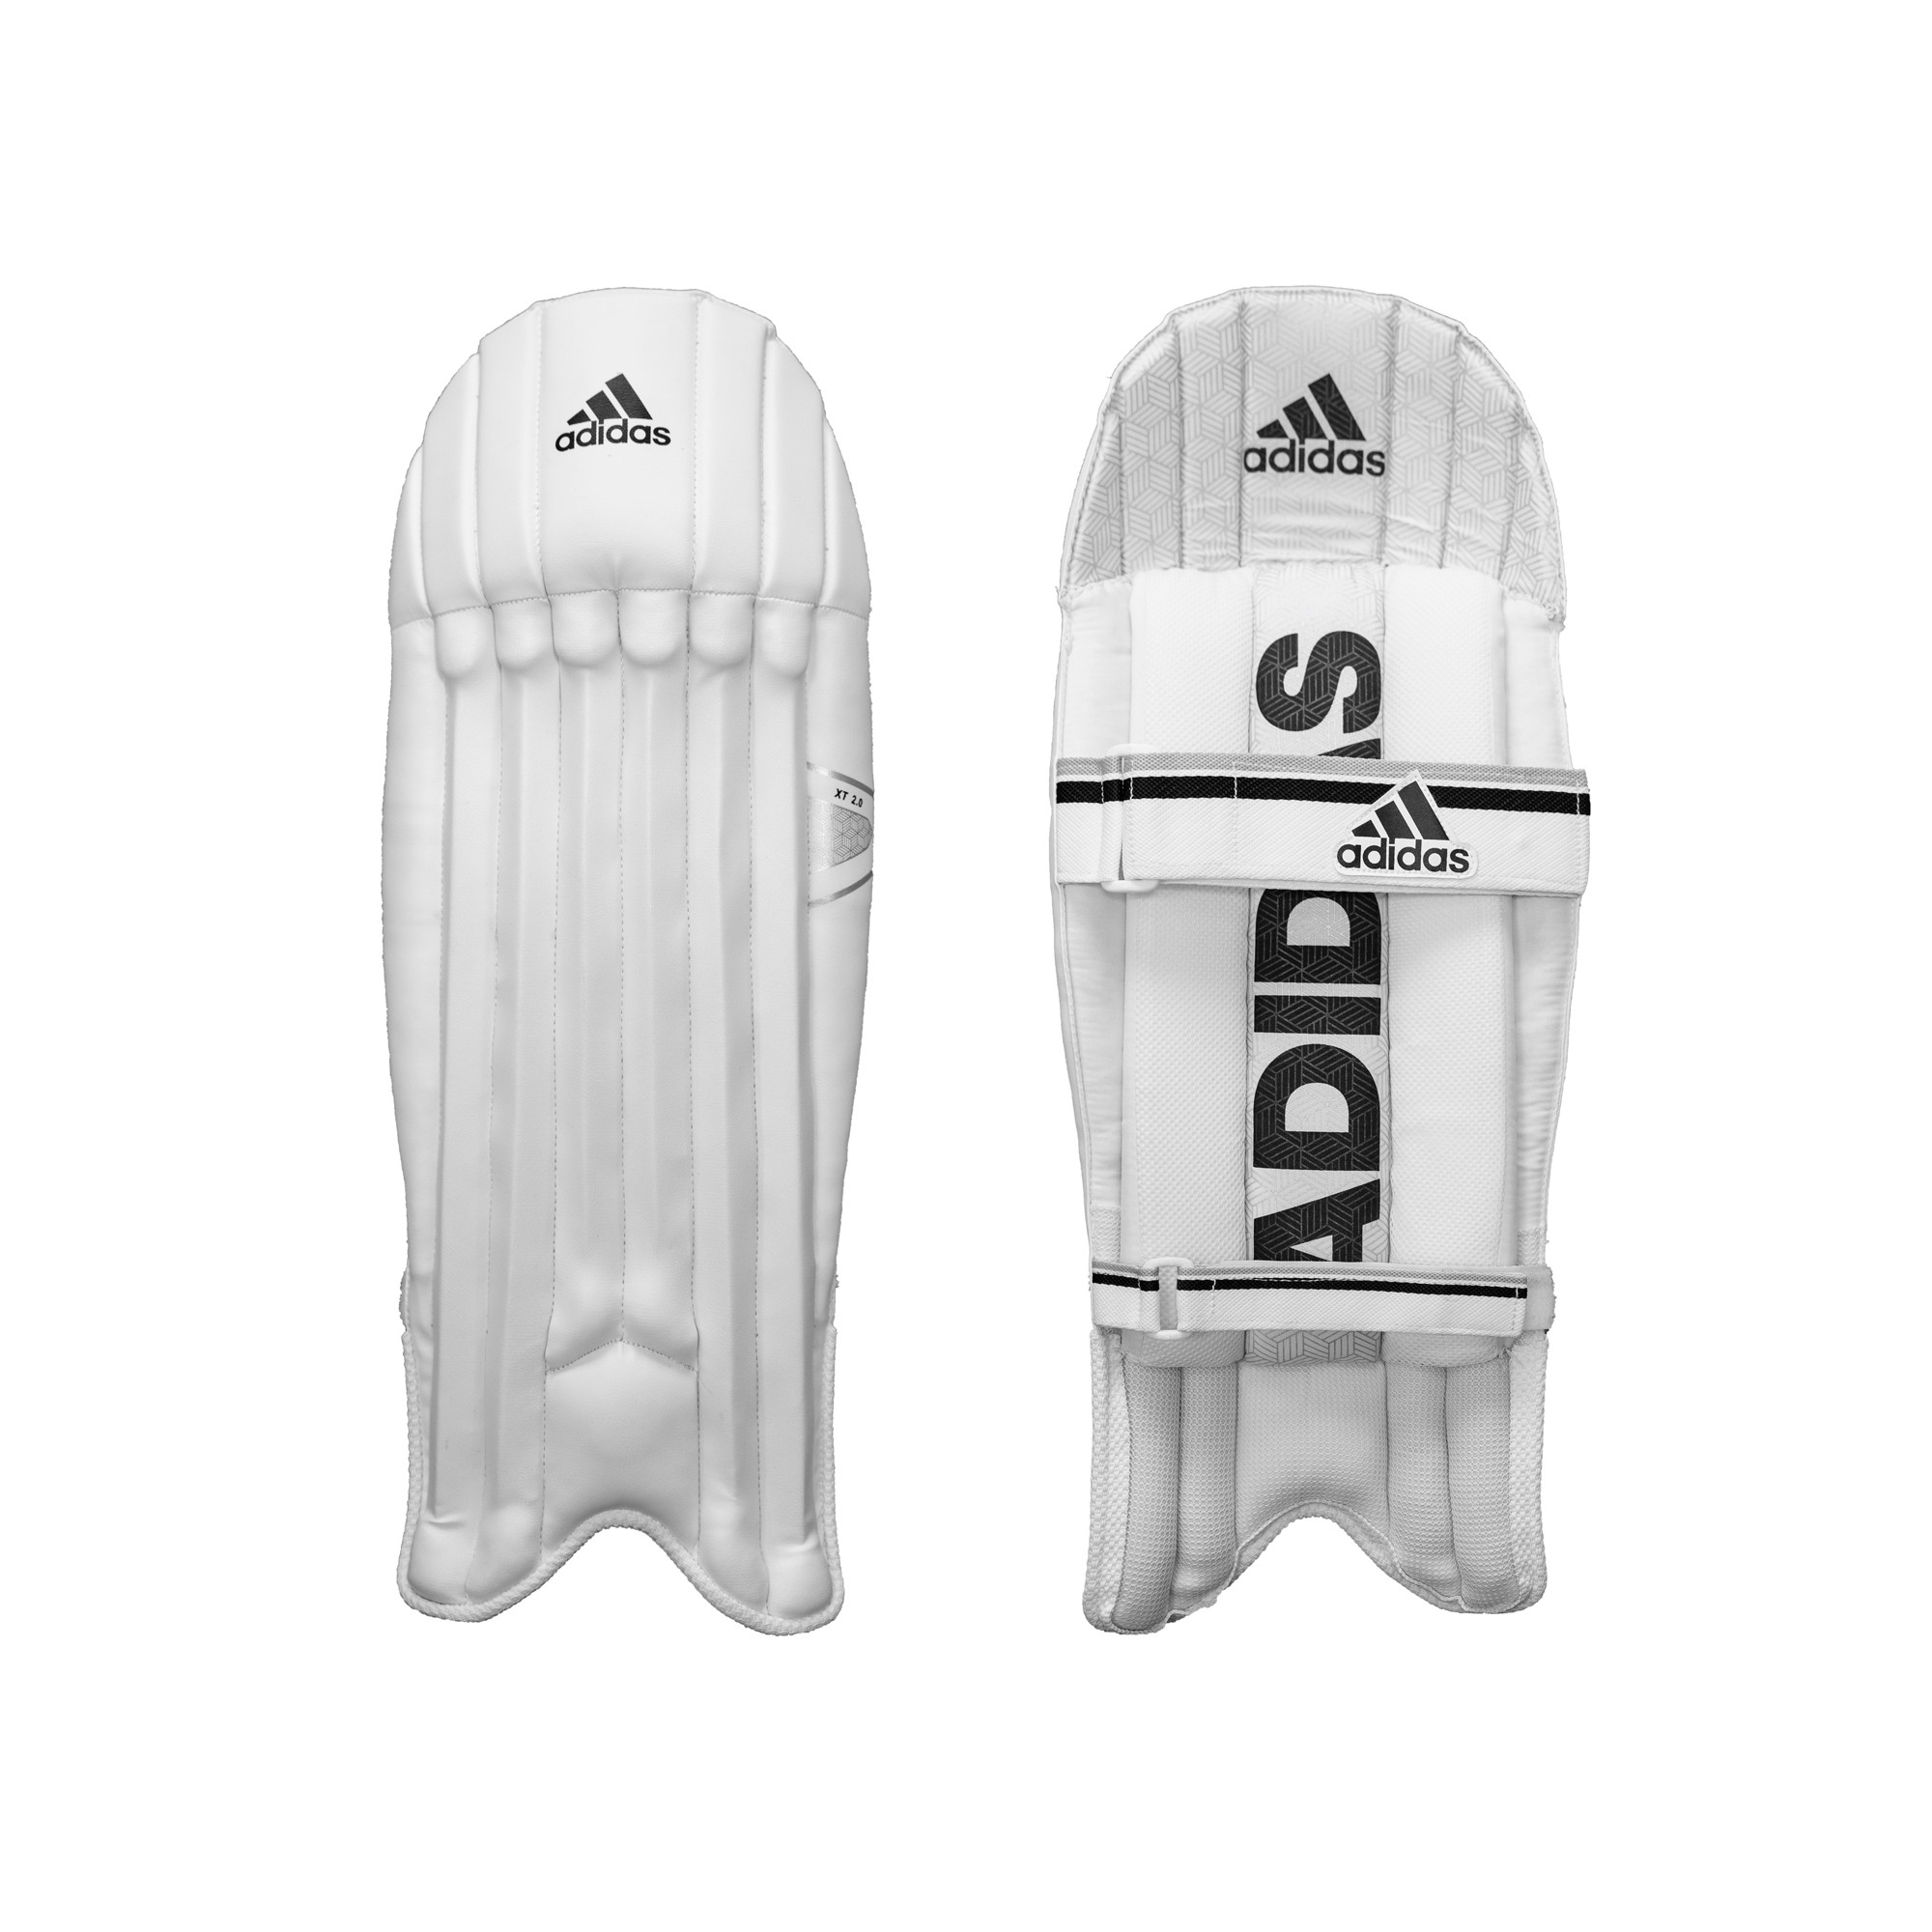 2019 Adidas XT 2.0 Junior Wicket Keeping Pads *